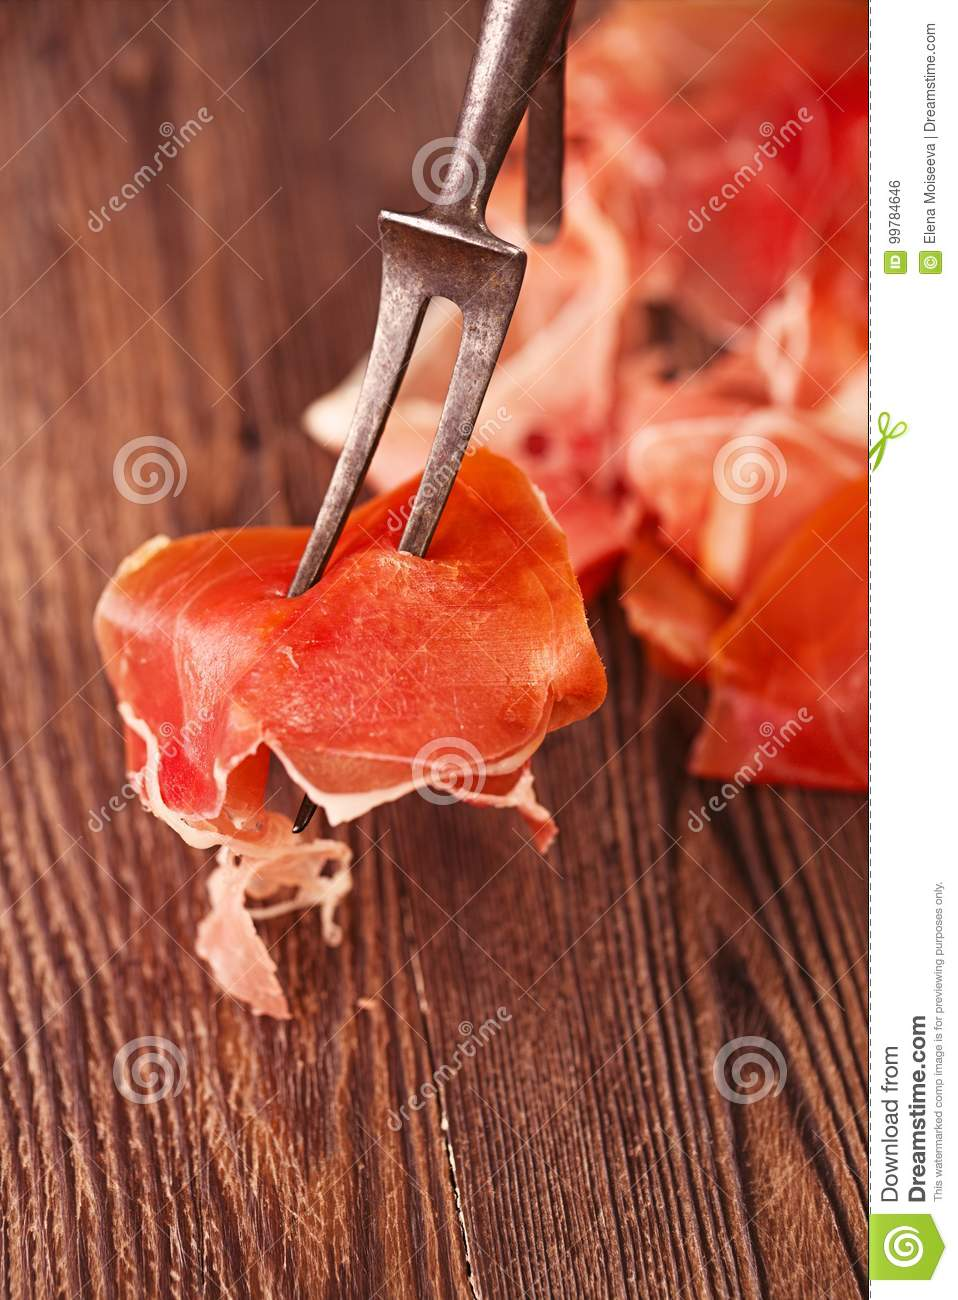 Spanish jamon Cured Meat on large vintage meat fork